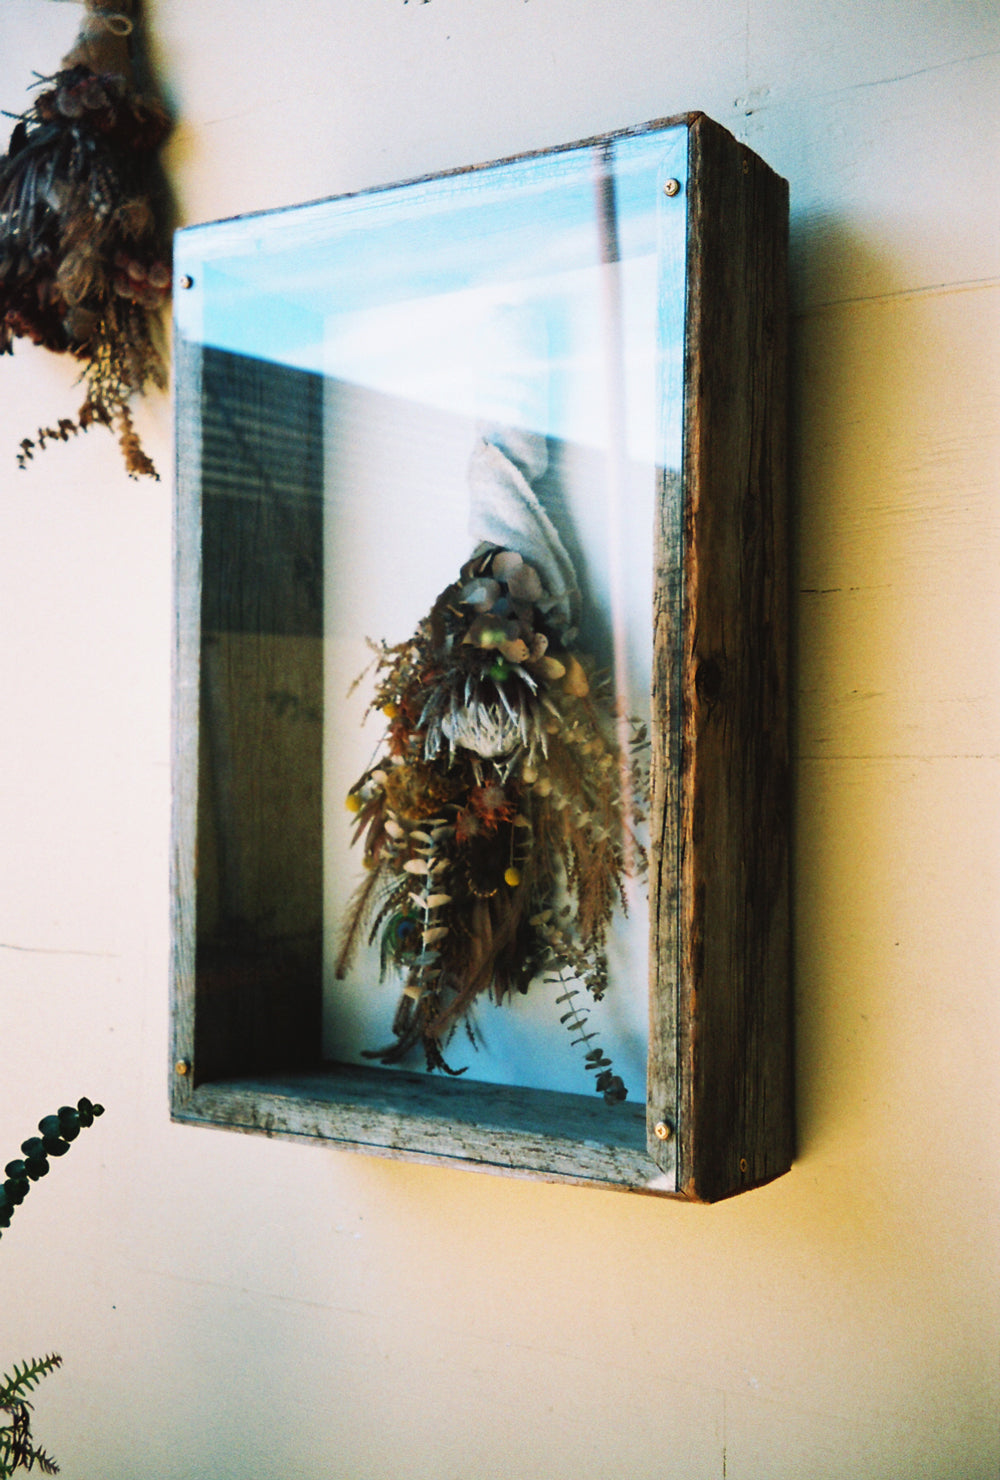 Dried flower art by The Unlikely Florist